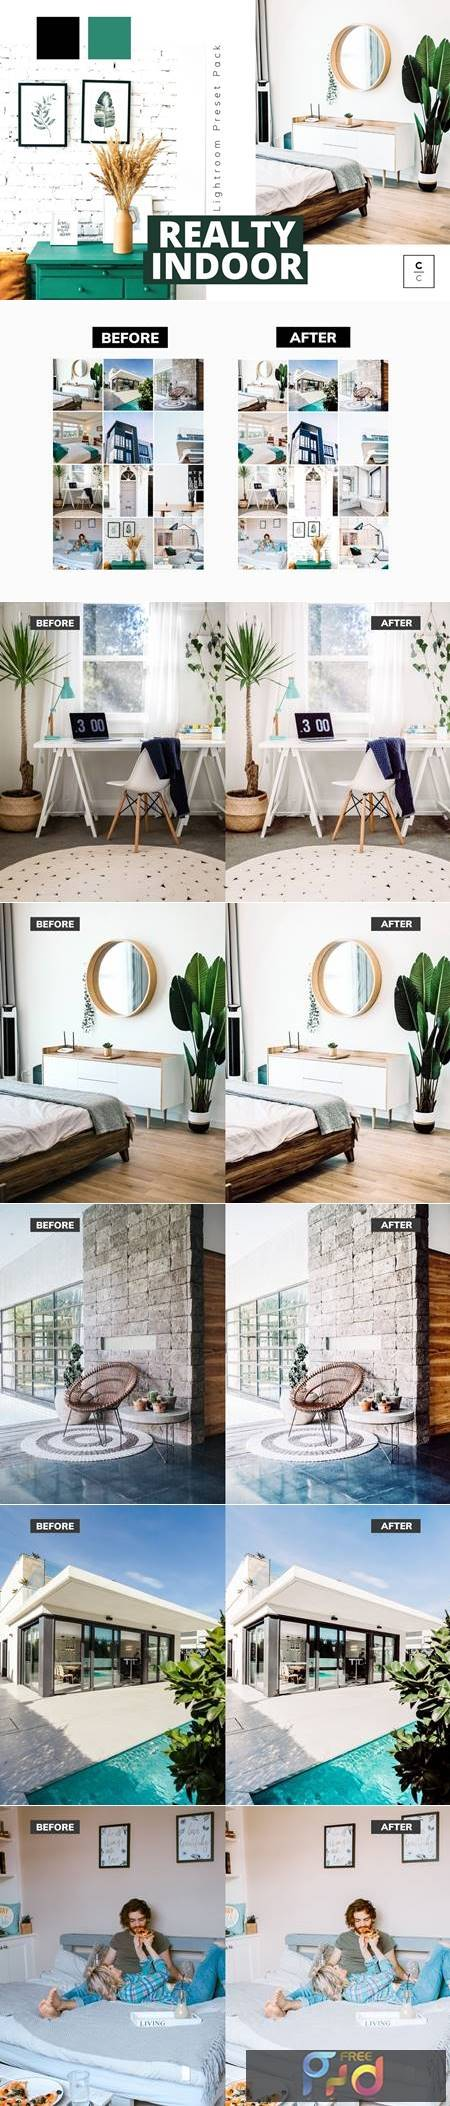 Real Estate Lightroom Presets 5978239 1